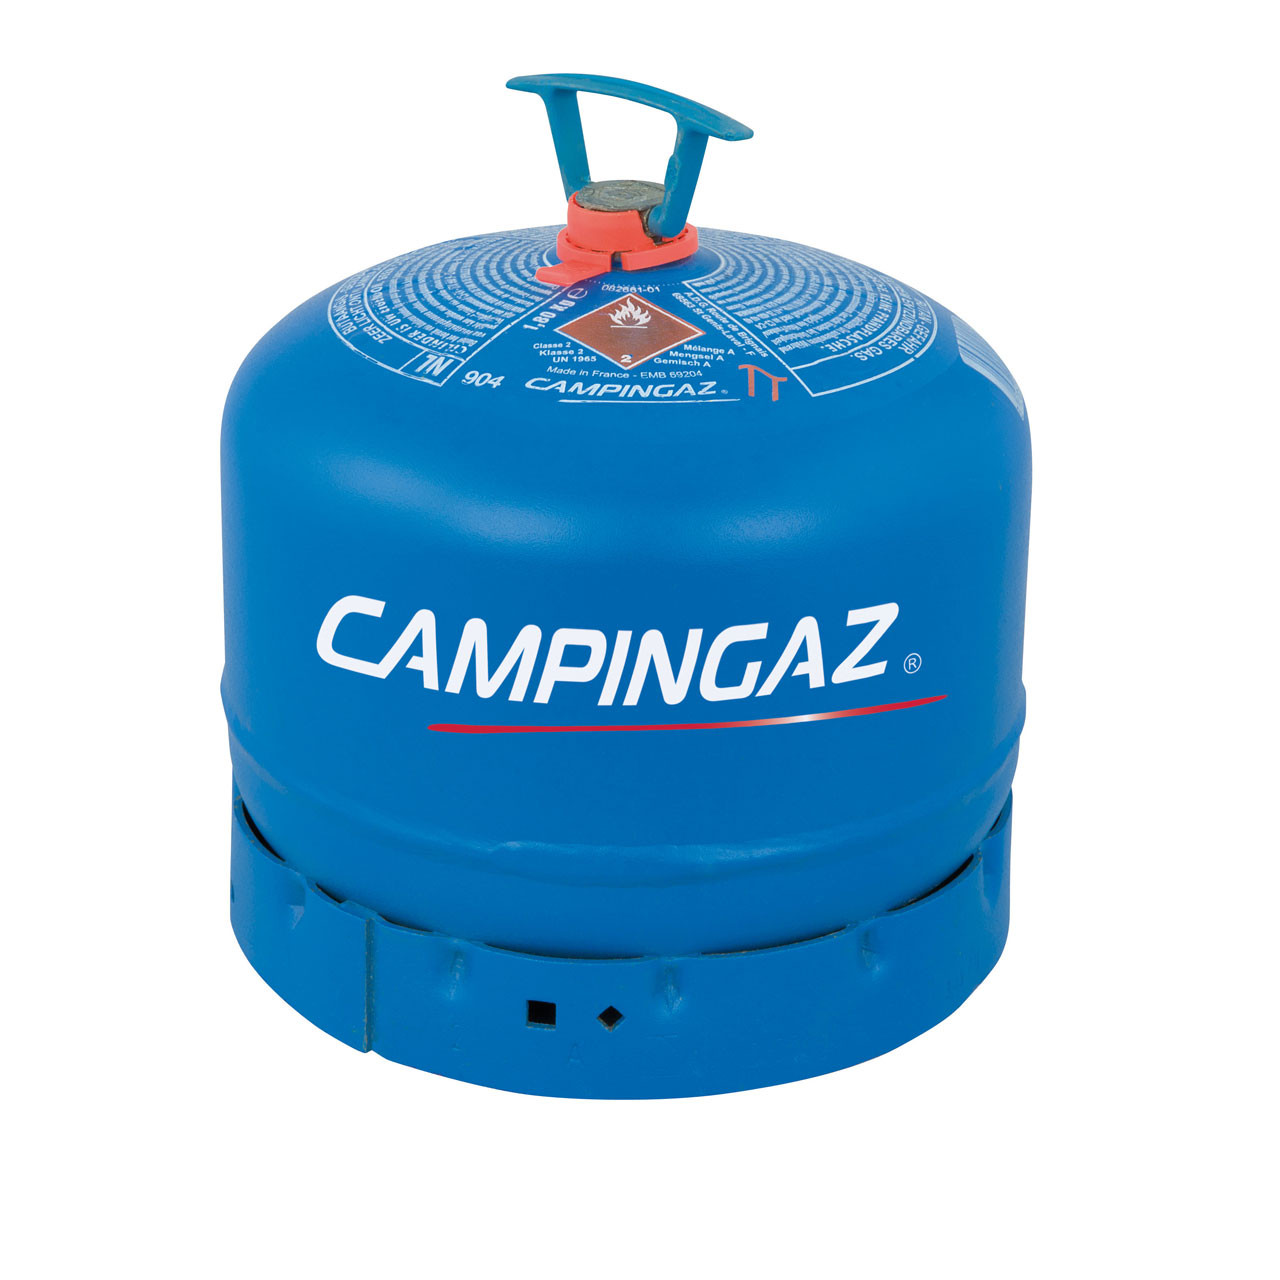 Campinggaz 904 Campingaz 904 Gas Cylinder From Camperite Leisure